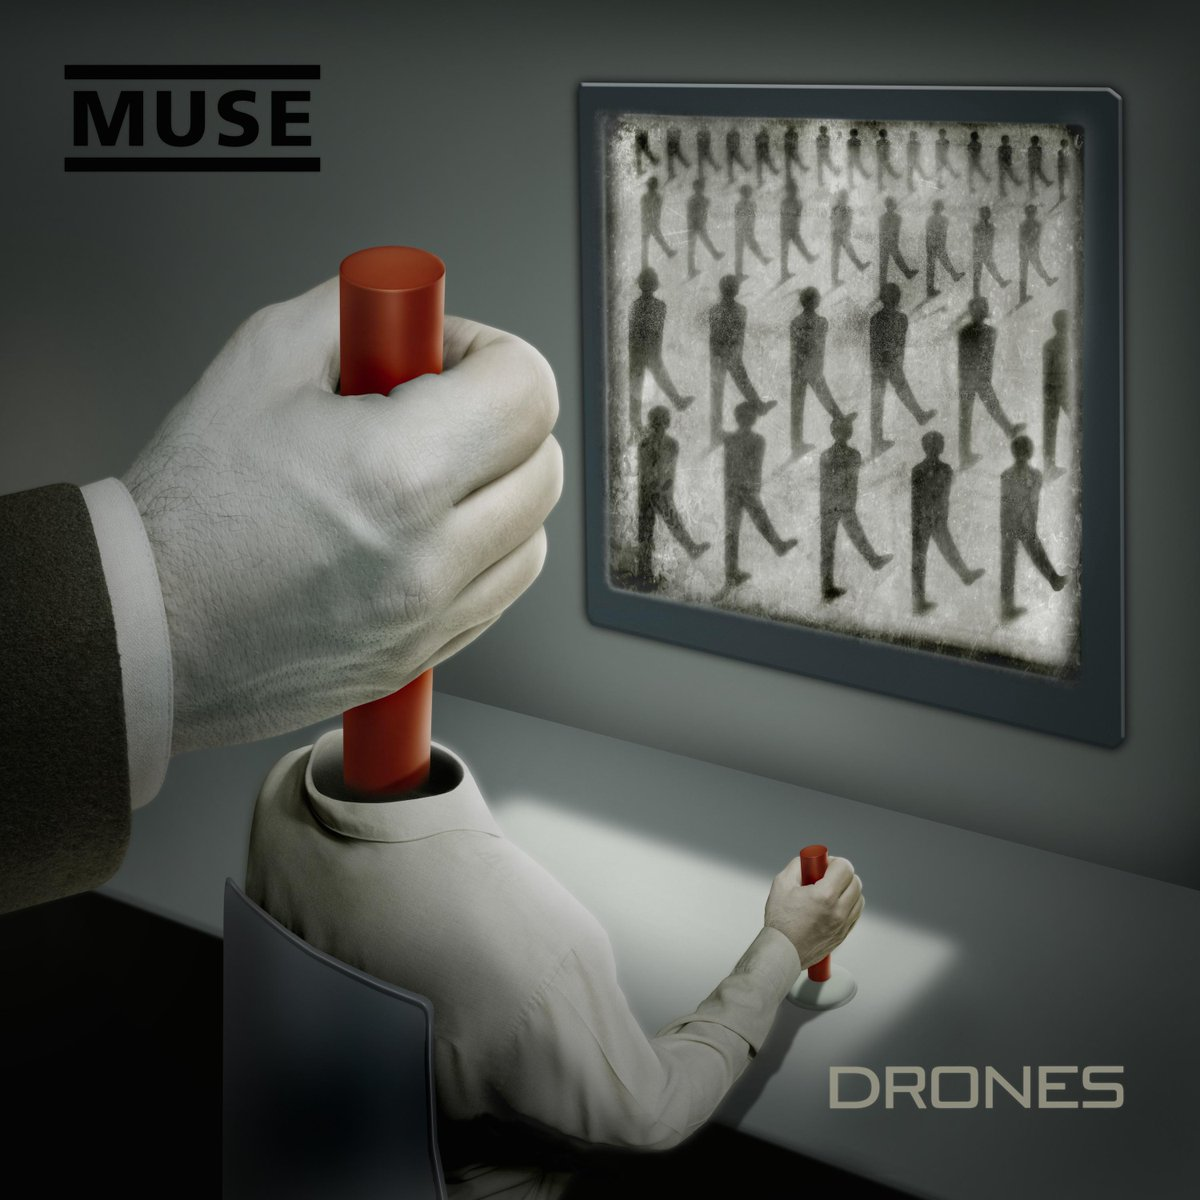 We are delighted to announce the Psycho UK Tour & the release of the new album Drones on 8 June! #MuseDrones http://t.co/x48G5p8UsP